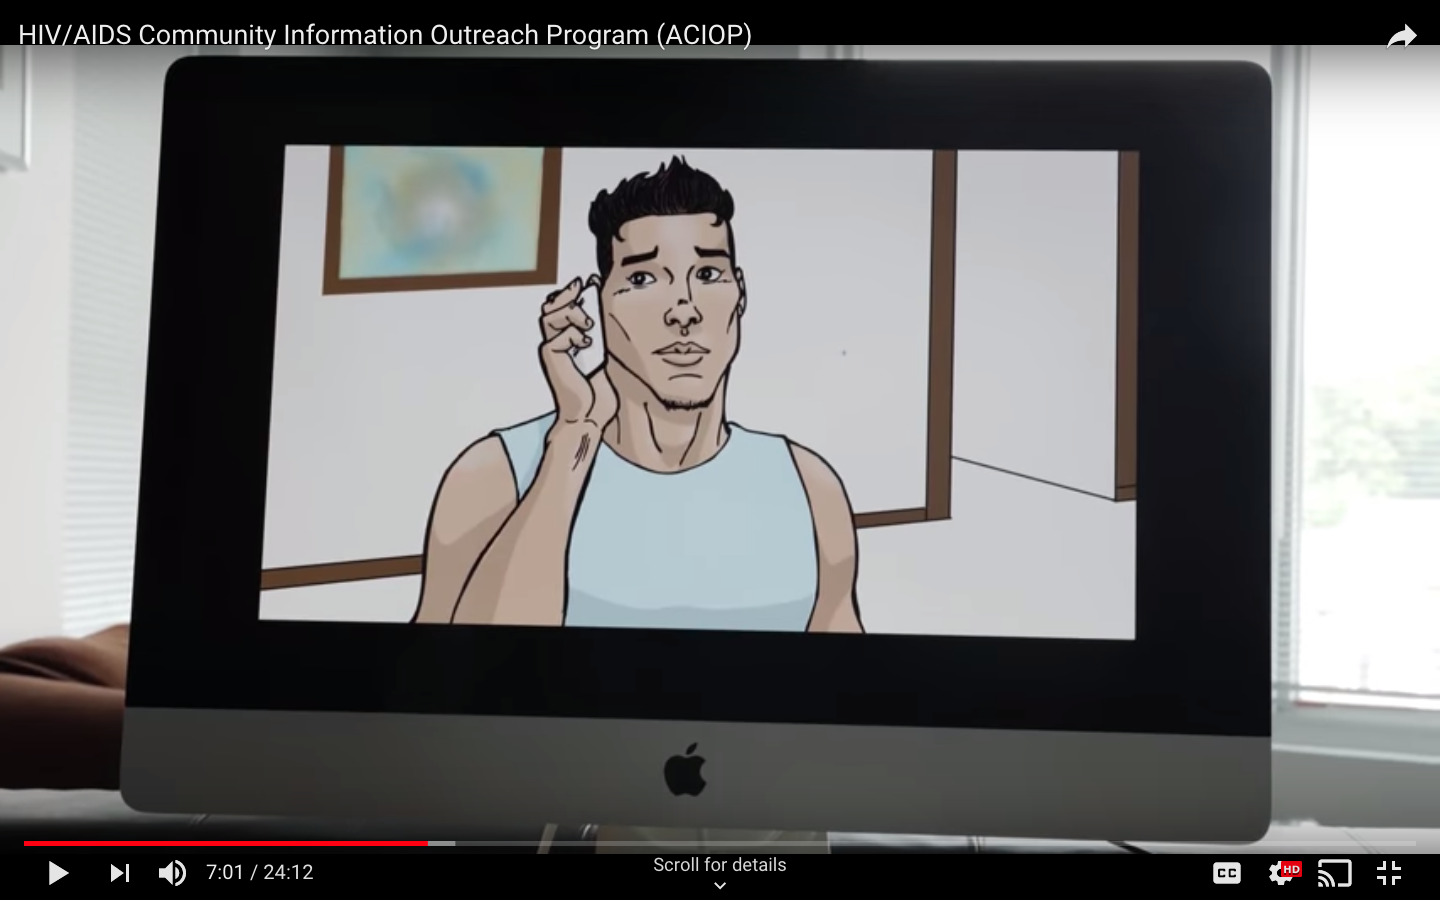 HIV/AIDS Educational Video